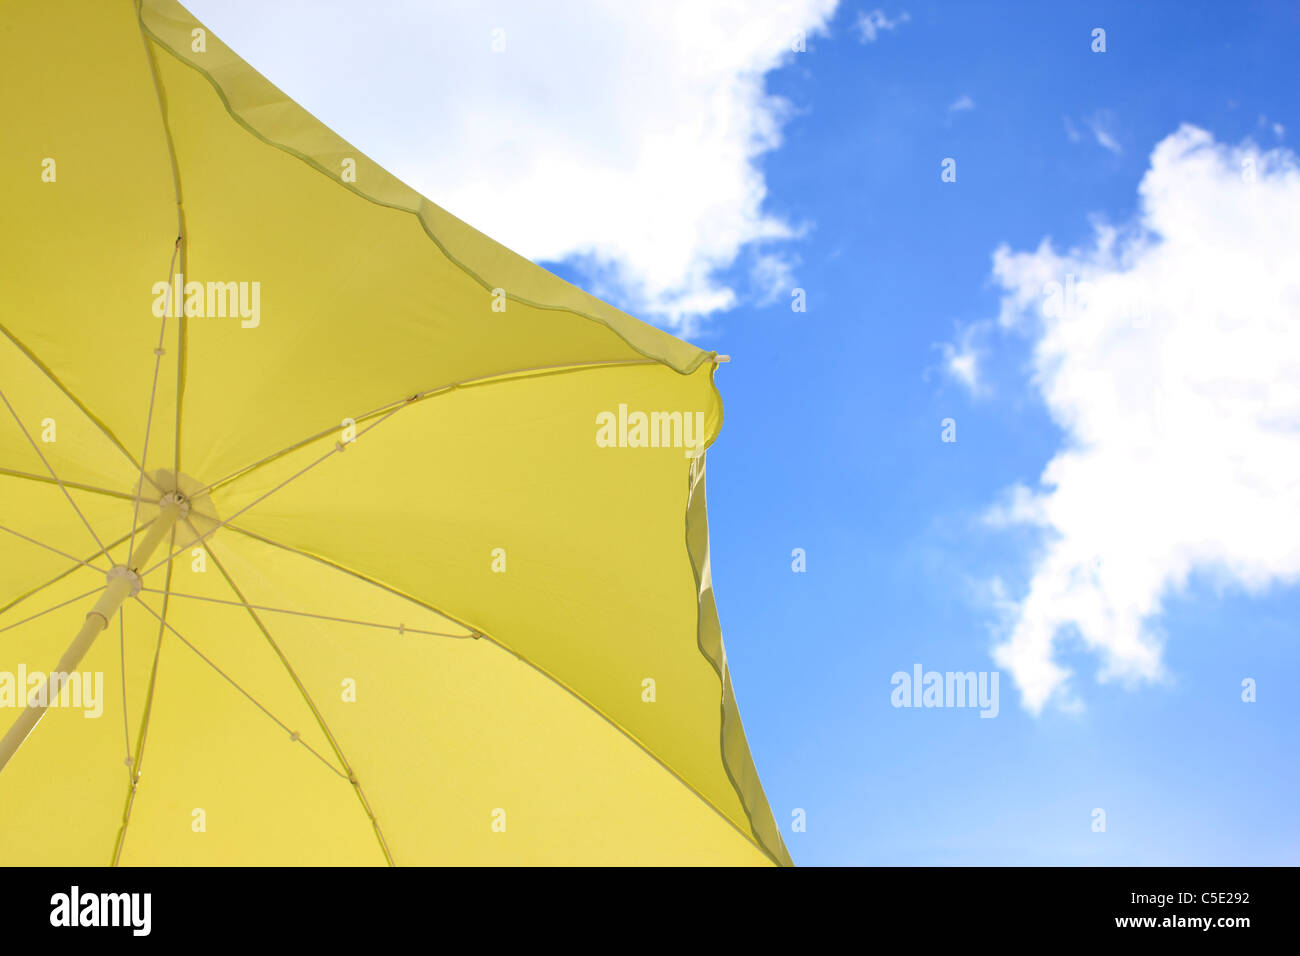 Close-up of cropped canopy against blue sky and clouds Stock Photo